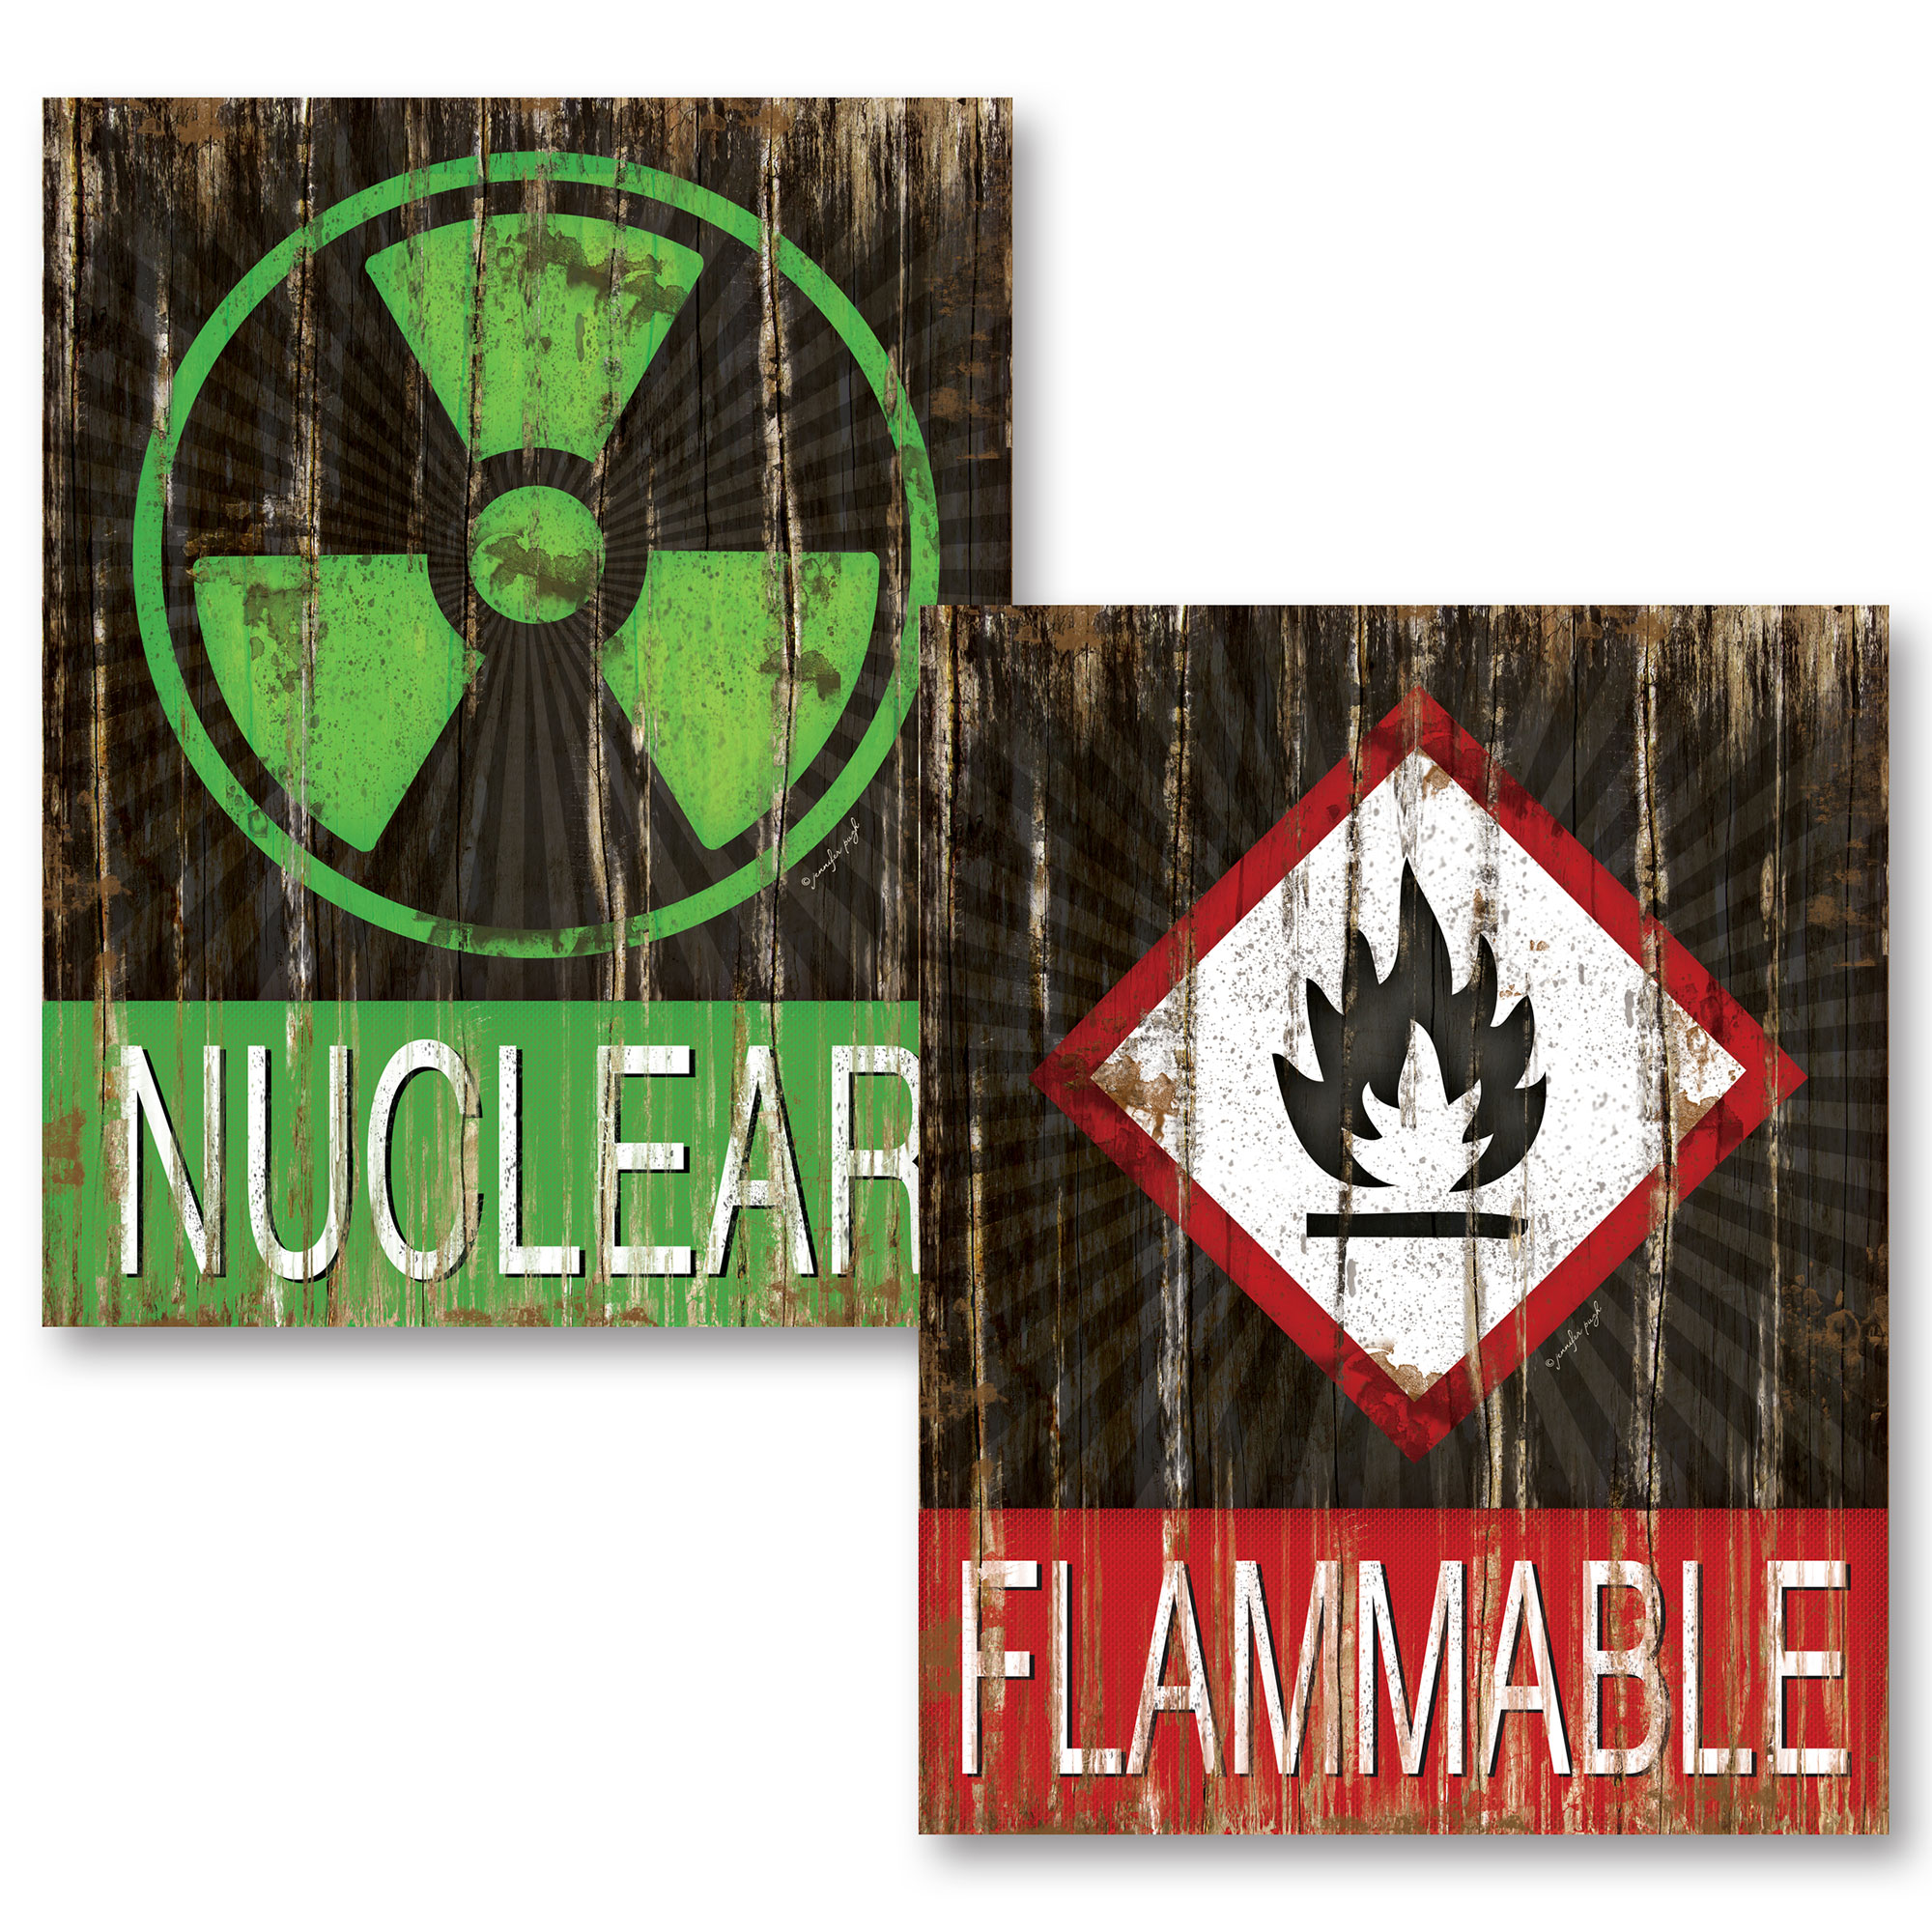 "Distressed Science ""Nuclear"" and ""Flammable"" Set (Printed on Paper, Not Wood); Two 11x14in Unframed Paper Posters"